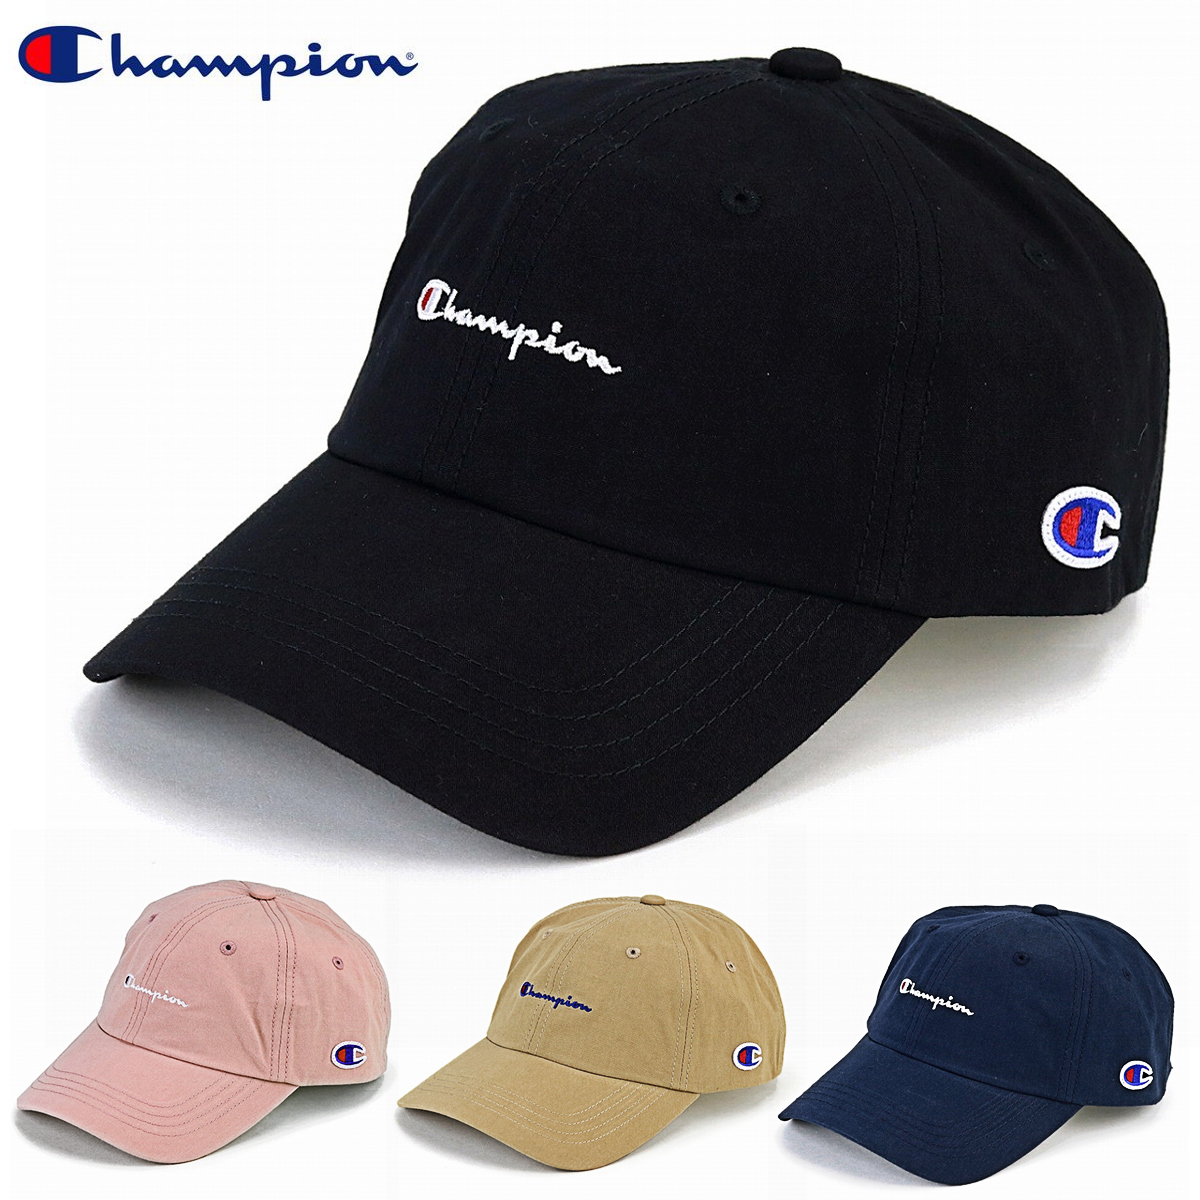 44911ab7e52 Champion cap black men champion low cap Lady s logo cap Shin pull plain  casual coordinates hat sports cap unisex adjustable size   black  baseball  cap  ...